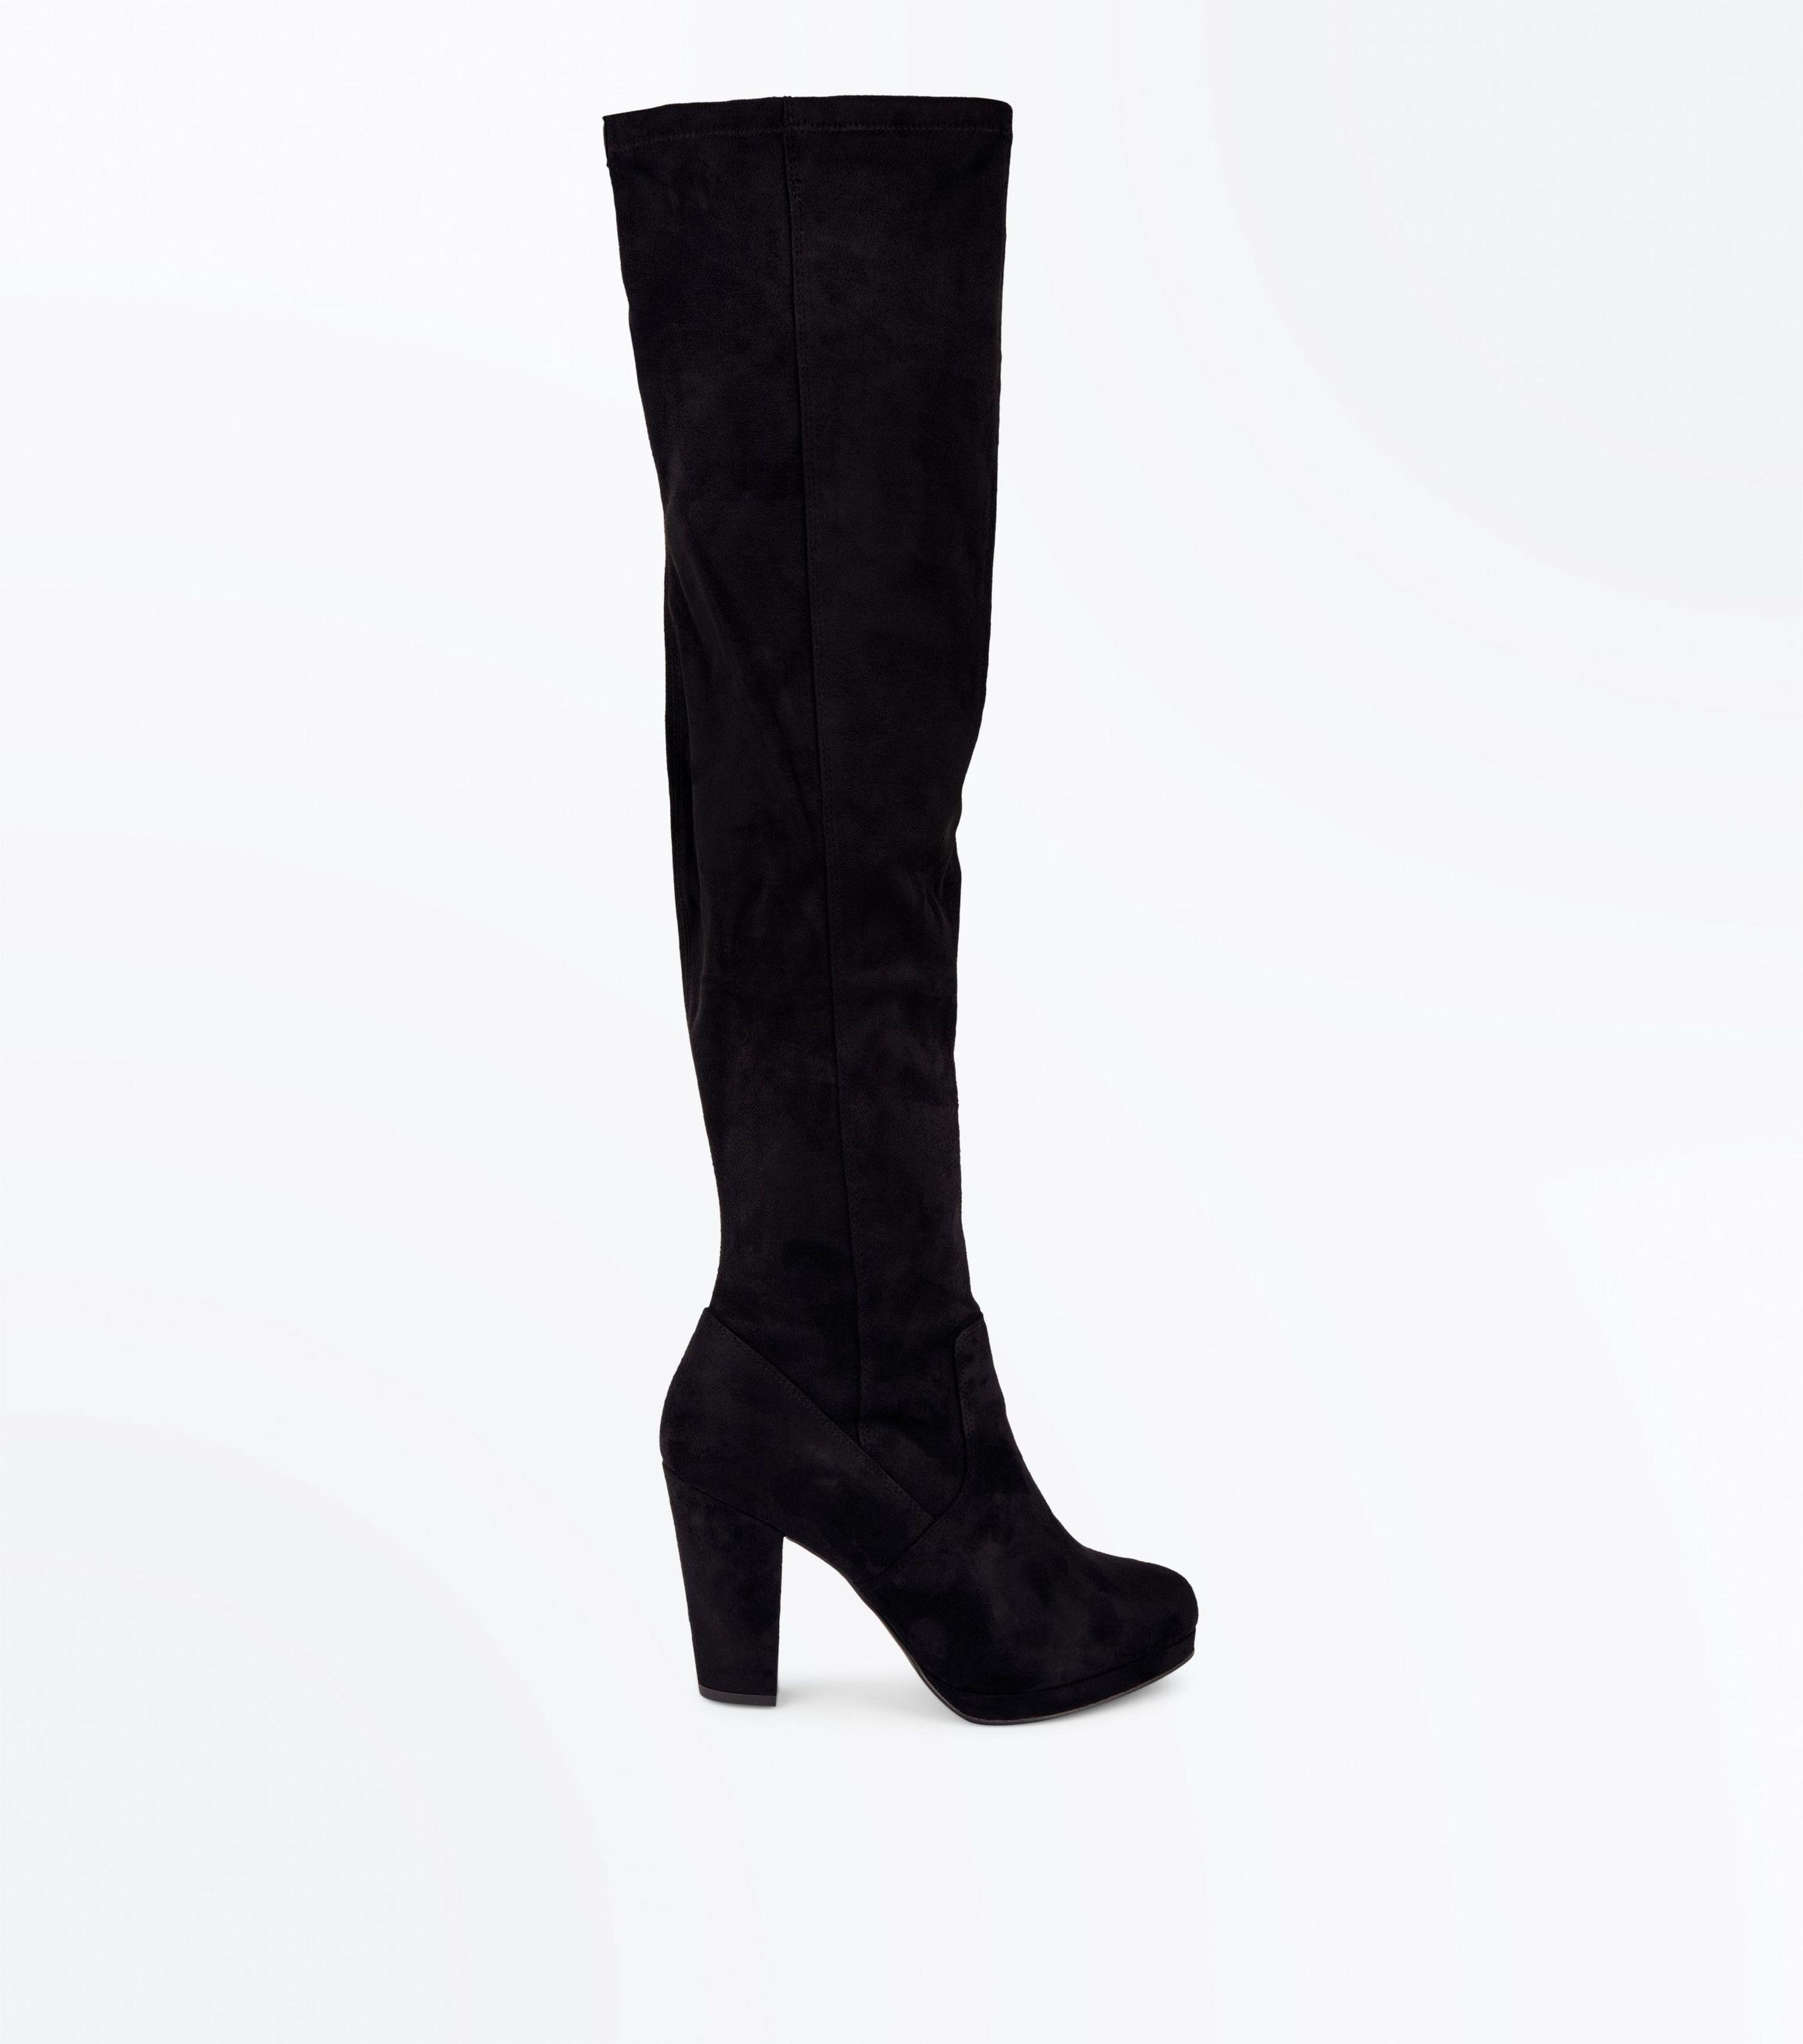 505448004fe New Look Wide Fit Black Suedette Platform Over The Knee Boots in ...